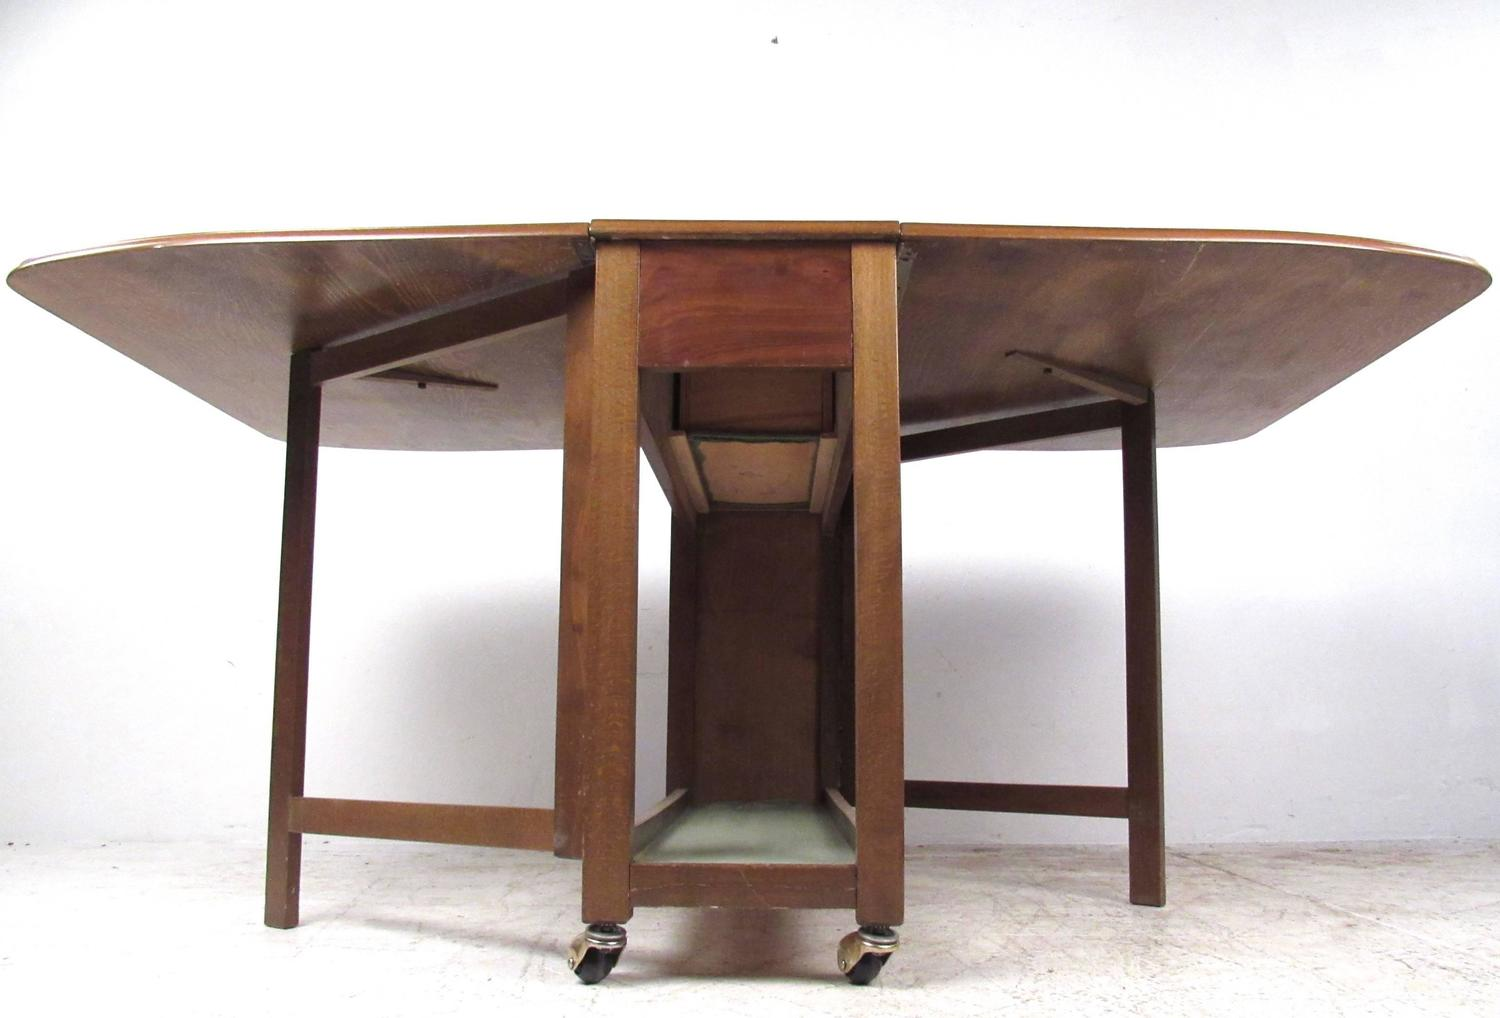 folding chair with wheels lounge cushions target mid-century modern rolling drop-leaf table chairs for sale at 1stdibs